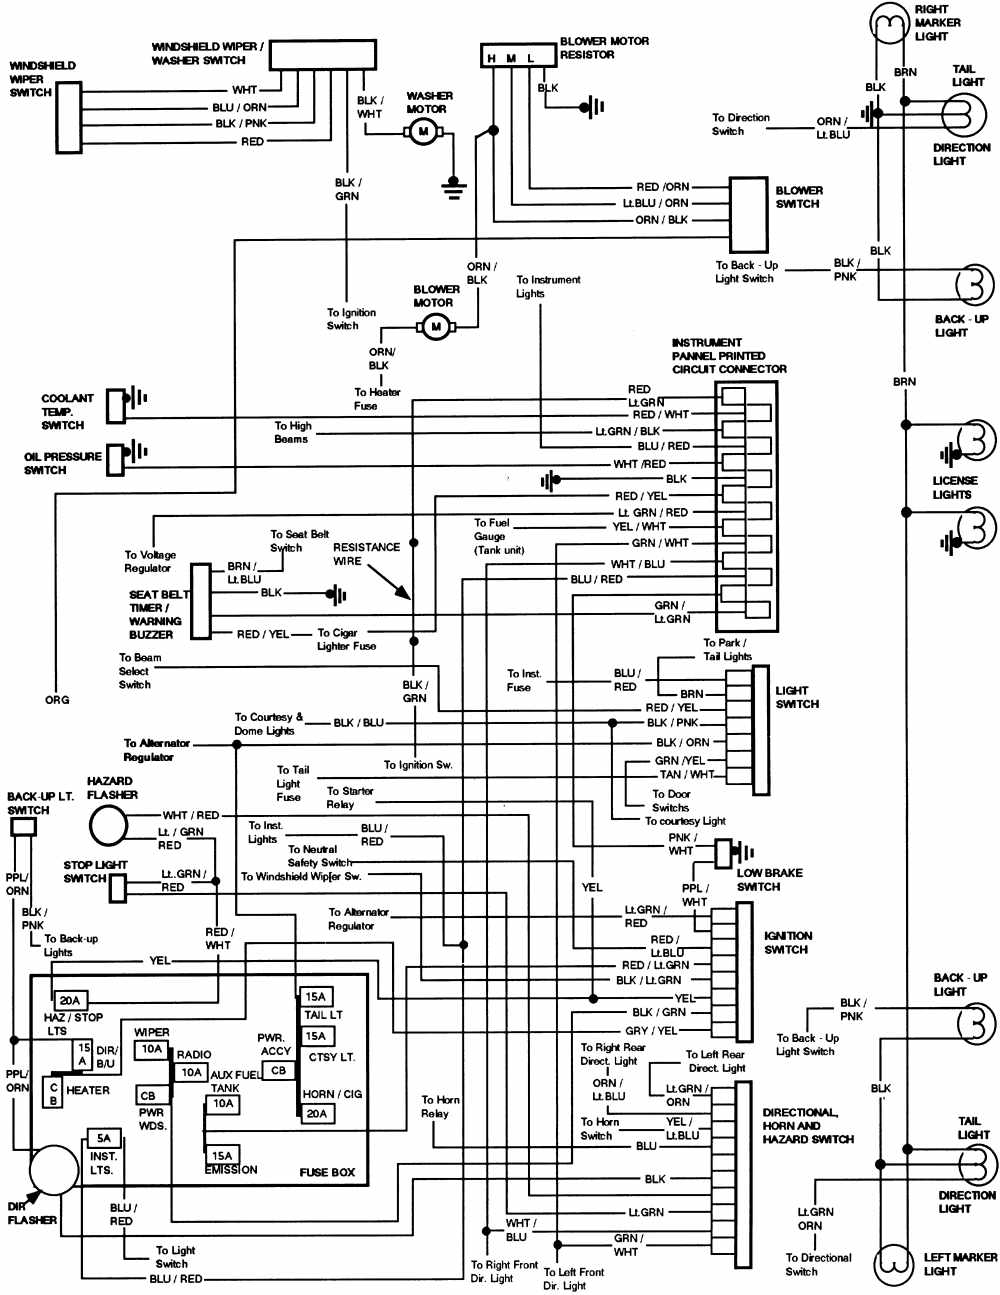 88 ford ranger ignition coil wiring diagram